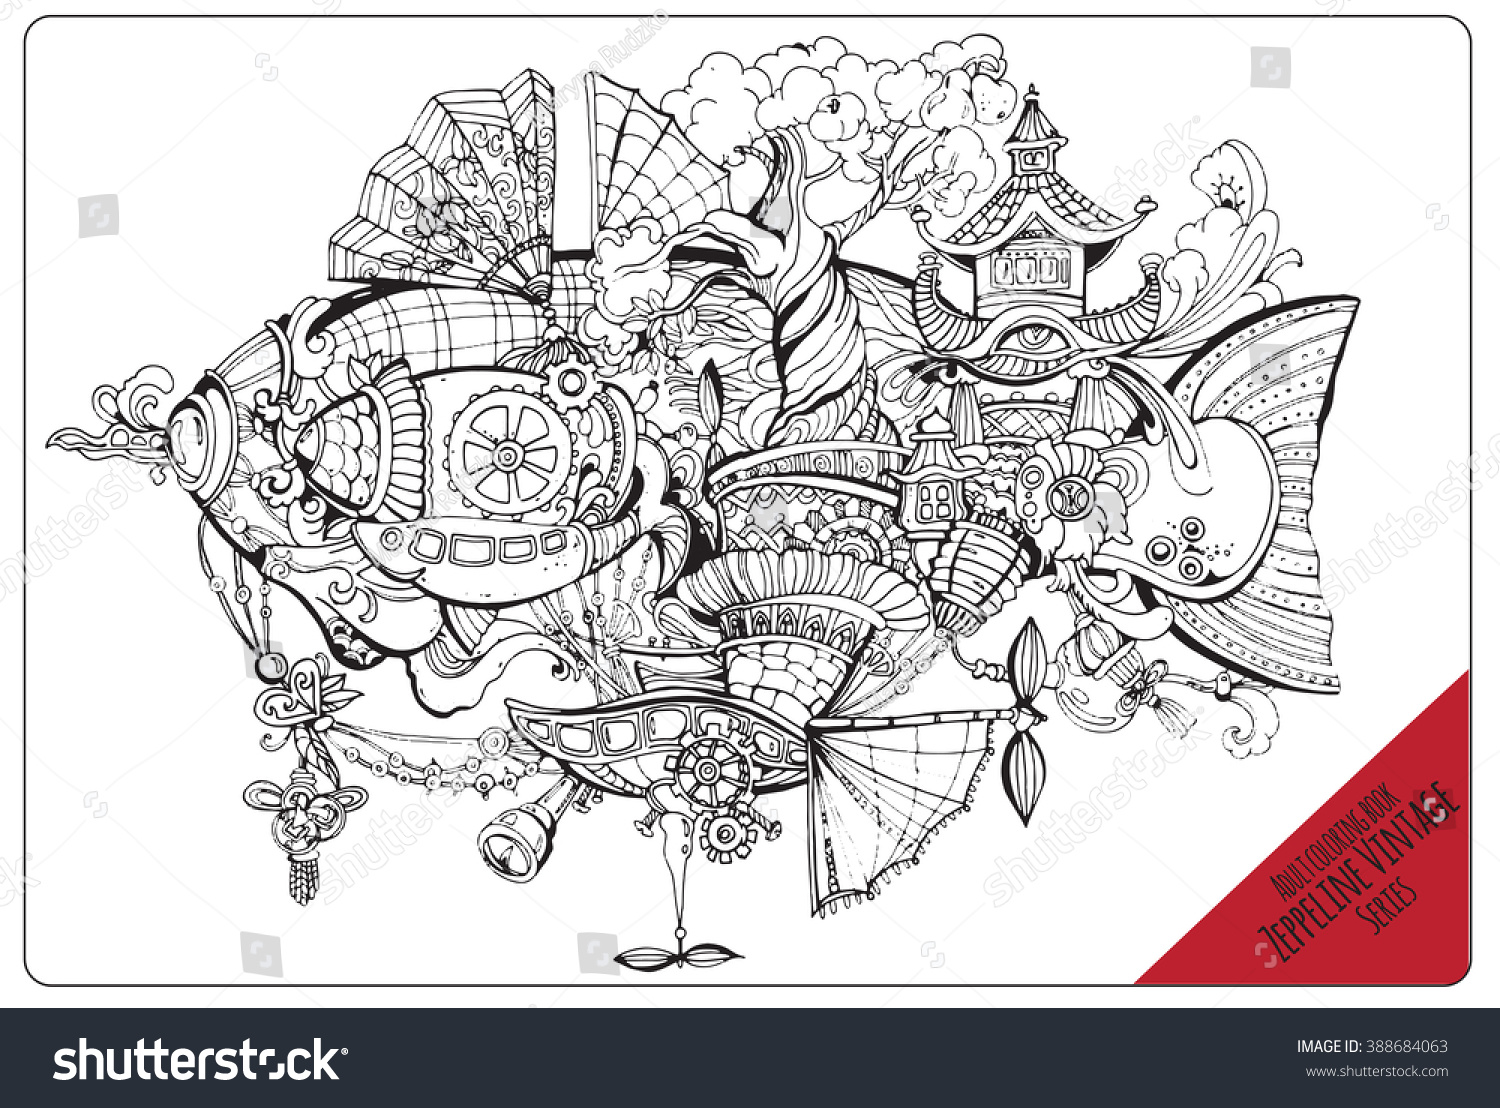 Vector Adult Coloring Book Page Black Stock Vector 388684063